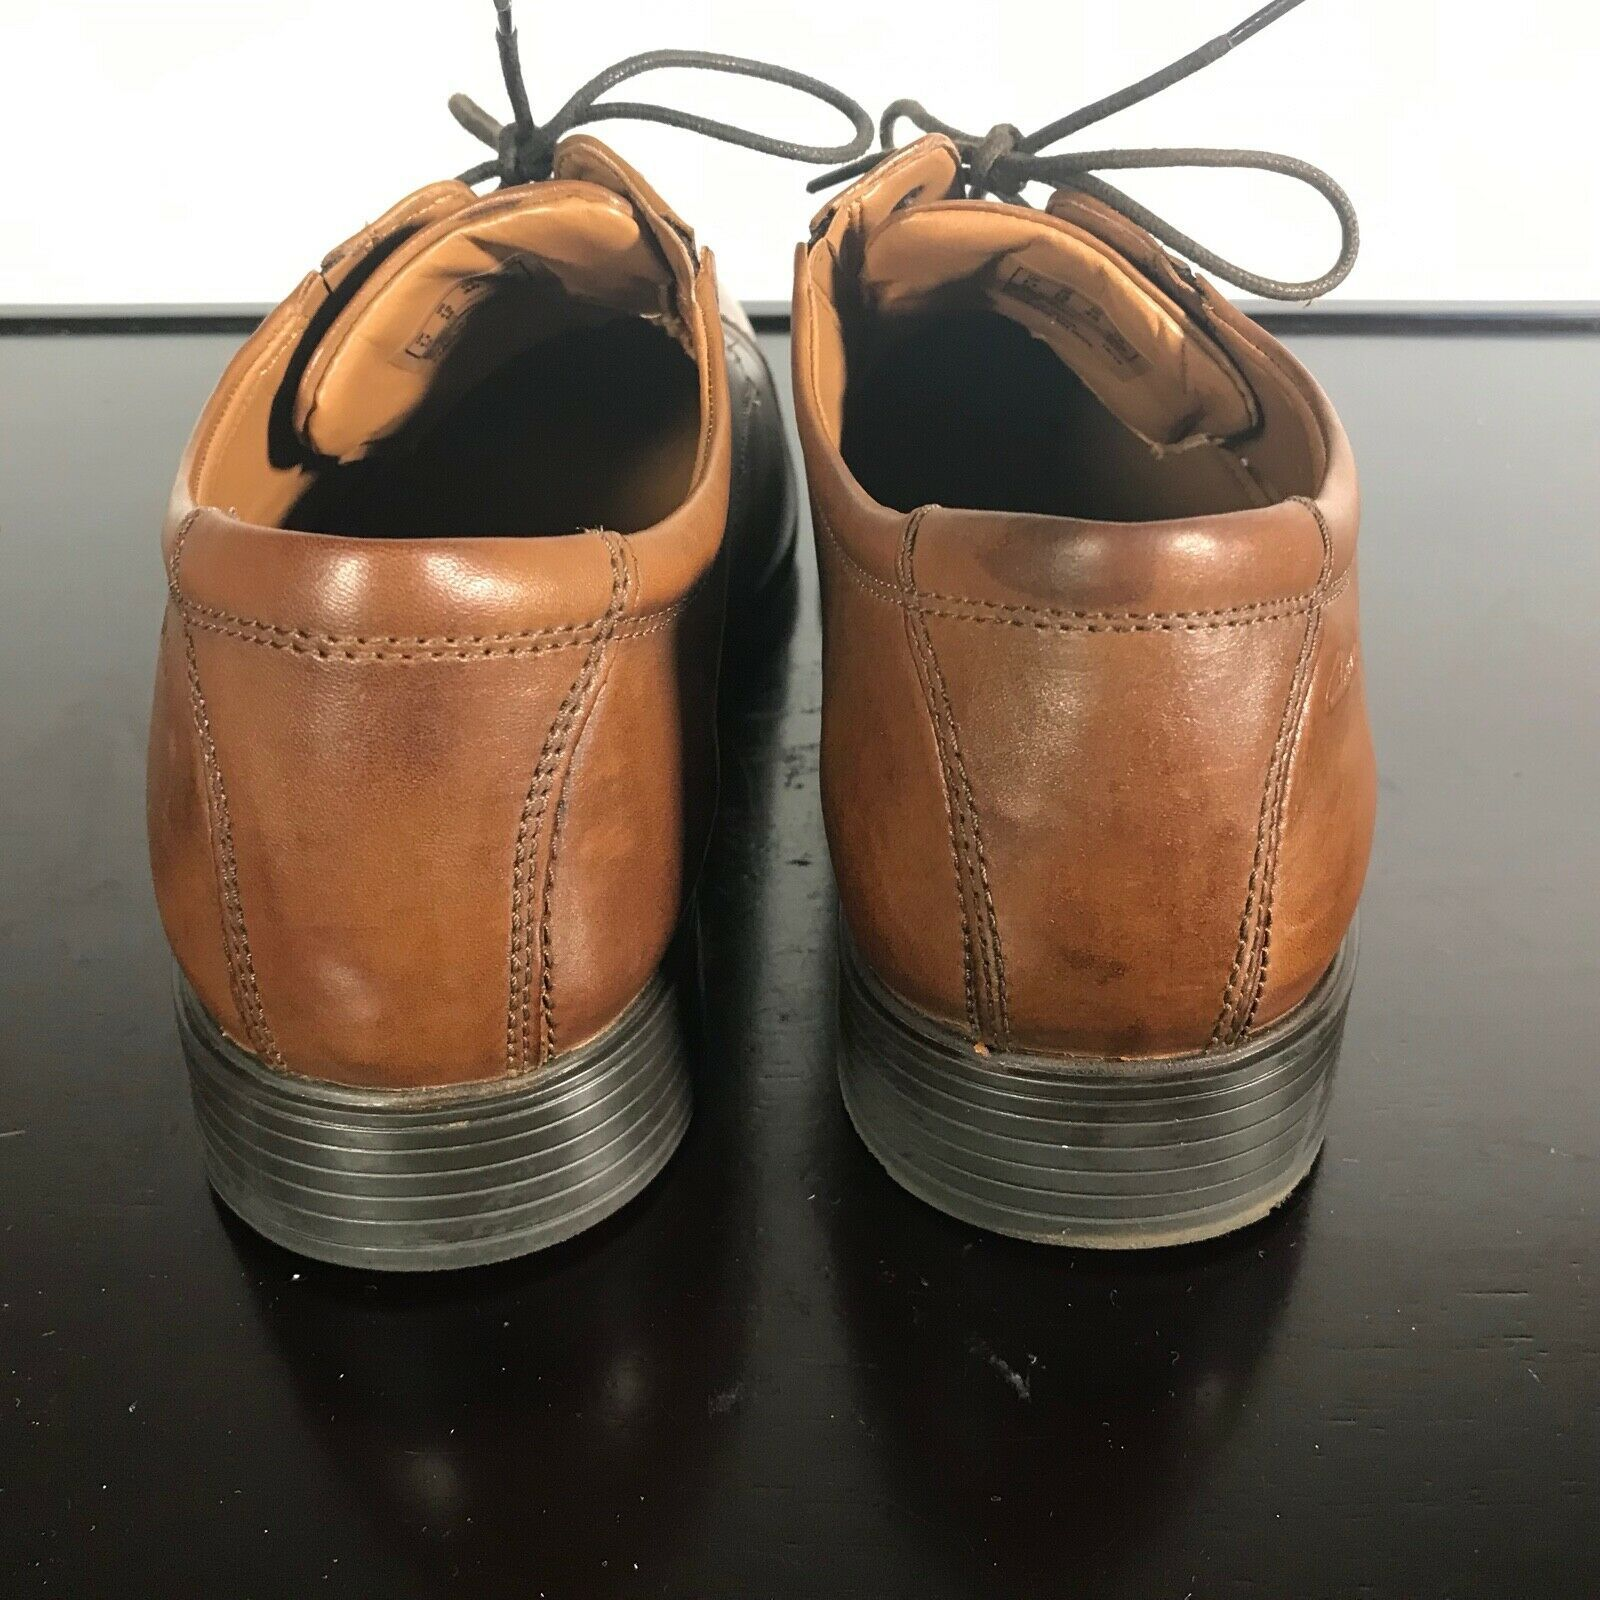 Clarks Sz 12 M Collection Men's OrthoLite Brown Soft Cushion Cap-Toe Dress Shoes